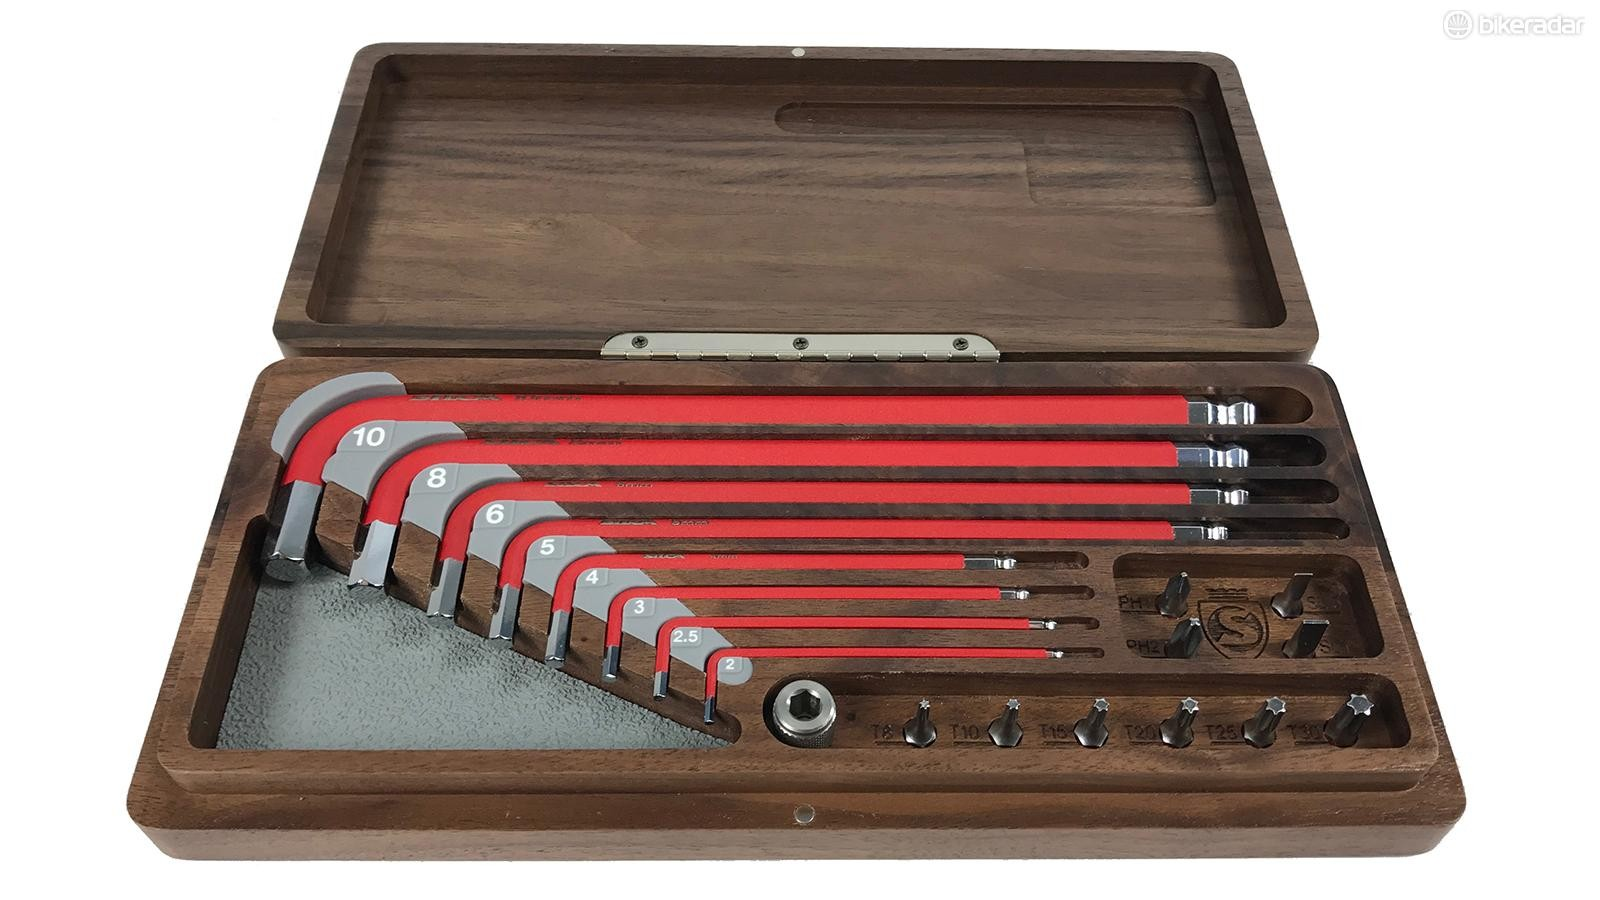 The limited edition has the same tools as the standard kit, housed in a walnut box